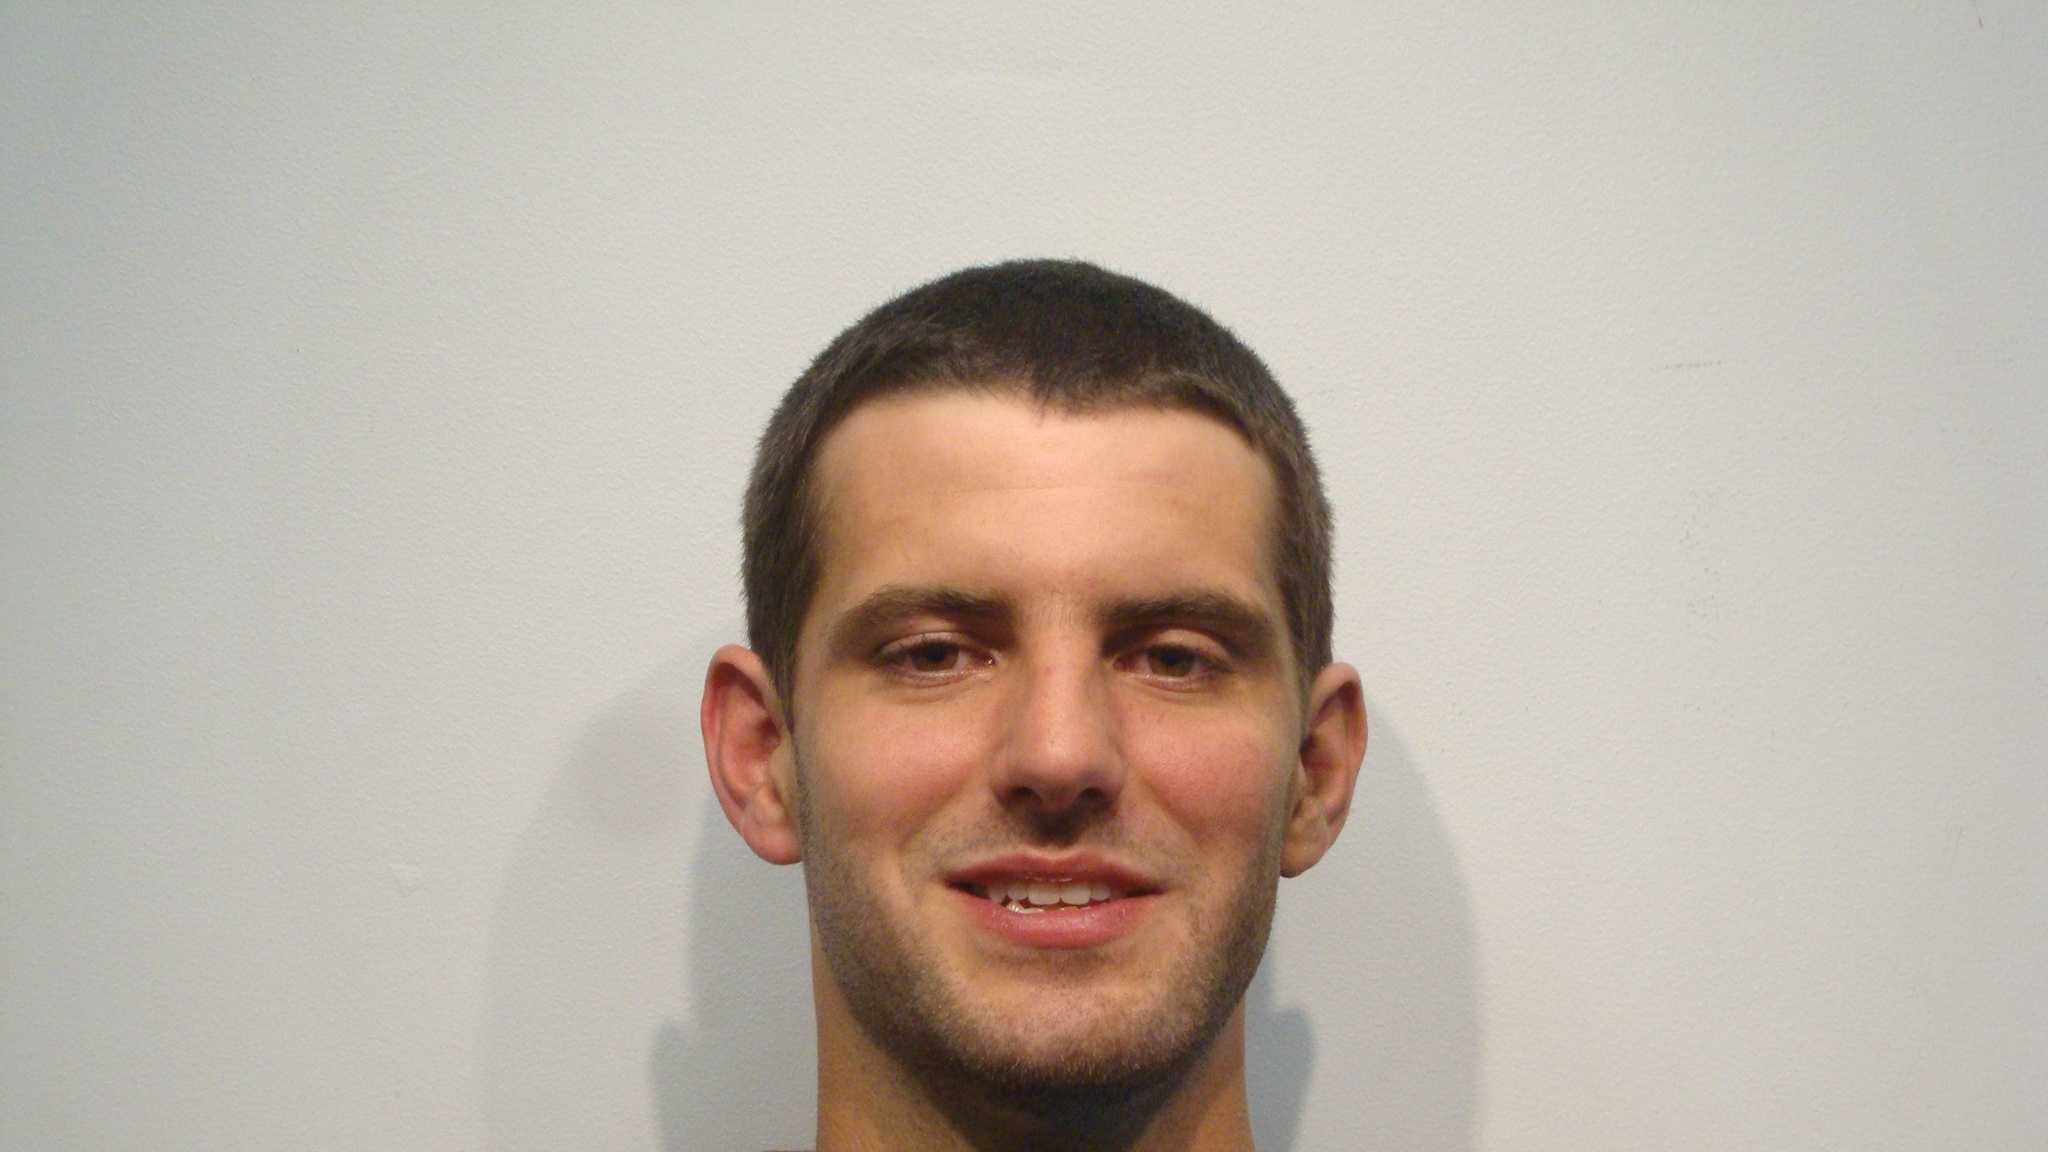 Aaron Bickford was arrested for assaulting a police officer in Rochester early Sunday.